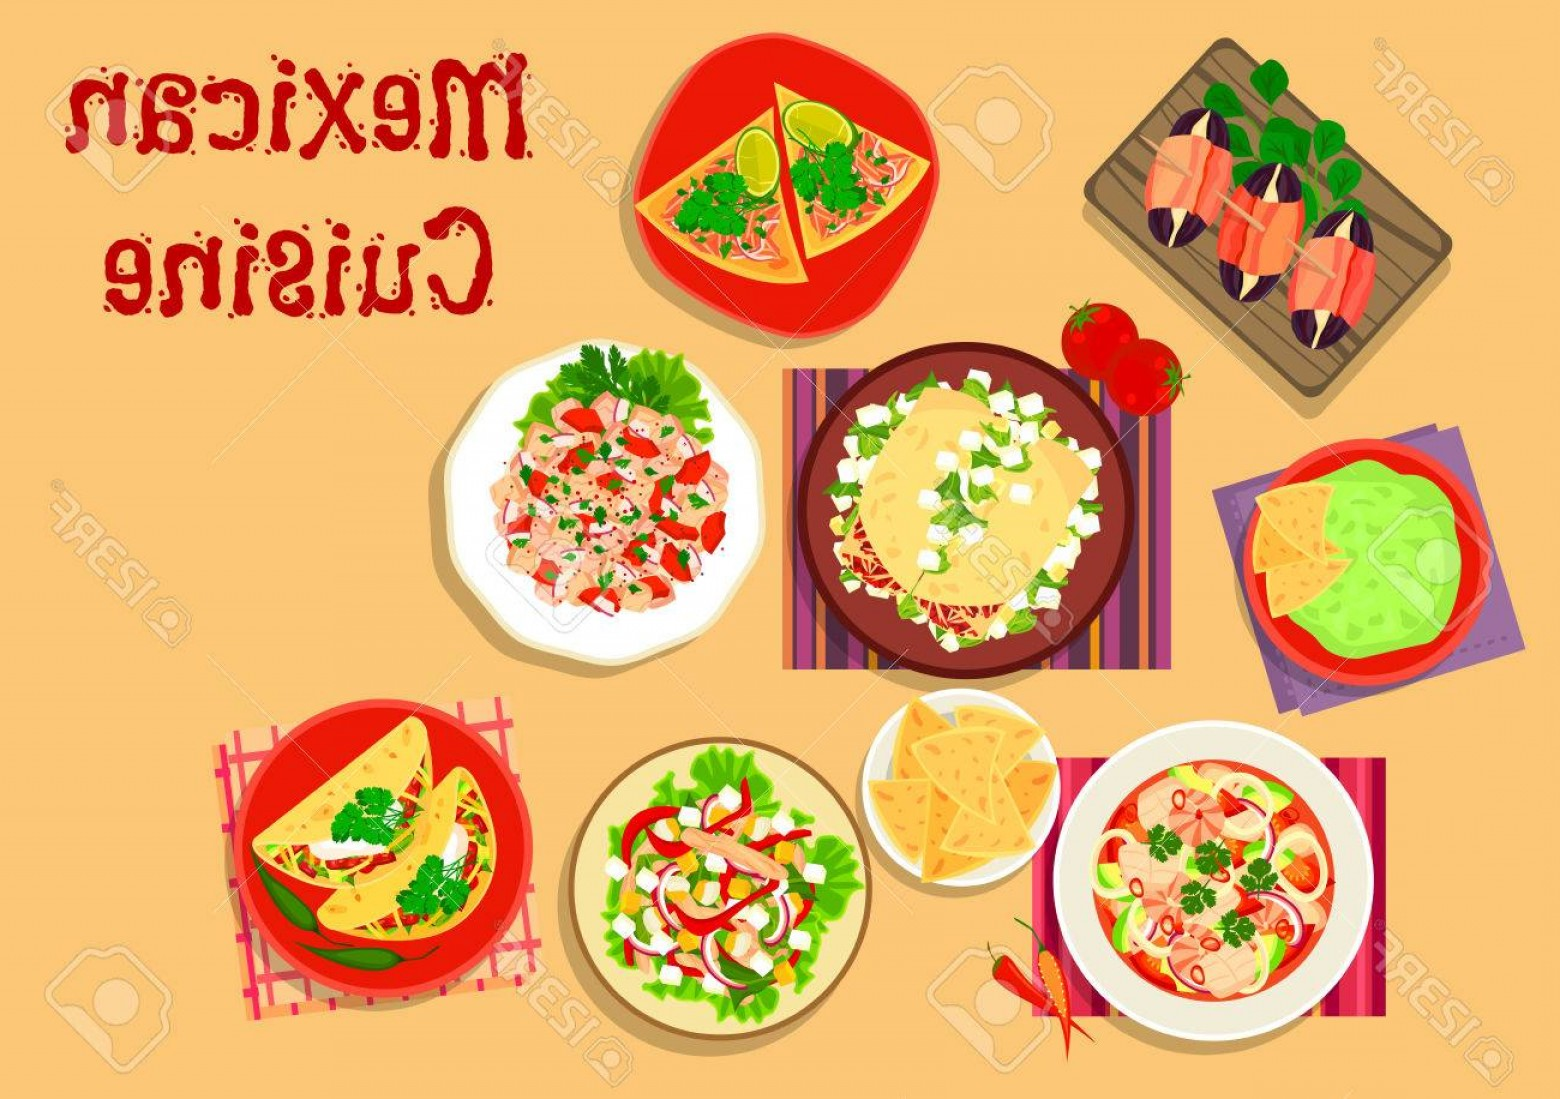 Steak Taco Vector Art: Photostock Vector Mexican Cuisine Spicy Salad And Snack Icon With Guacamole With Nacho Beef Tortilla Chorizo Salad Tac